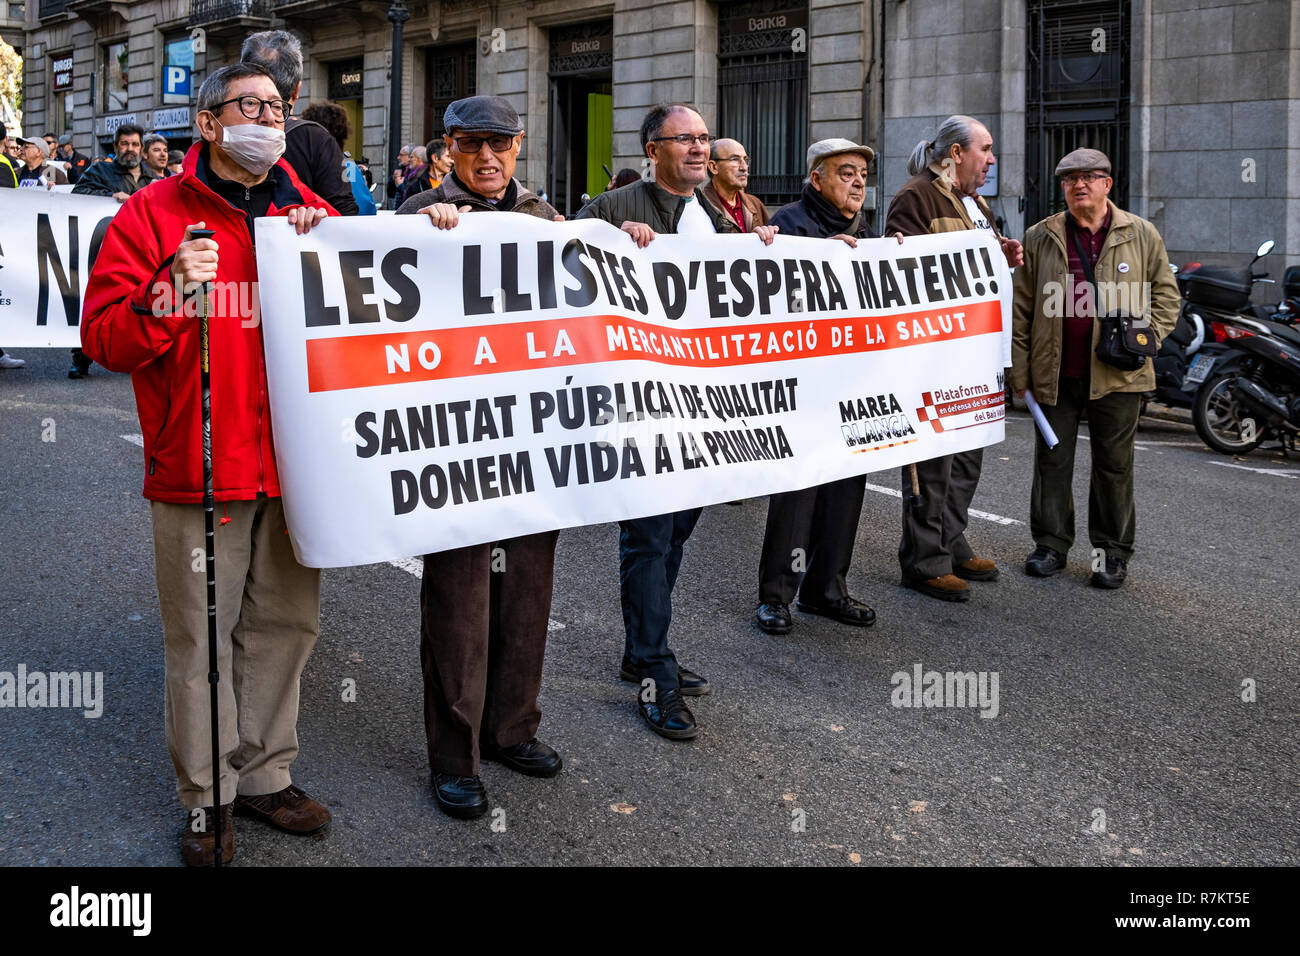 Barcelona, Spain. 10th December 2018. A group of protesters in a state of retirement are seen holding a banner during the protest. Called by Marea Blanca Catalunya within the state fight against the waiting lists and the commercialization of health, the protesters have toured the center of Barcelona to finish in front of the Generalitat of Catalonia. Credit: SOPA Images Limited/Alamy Live News - Stock Image